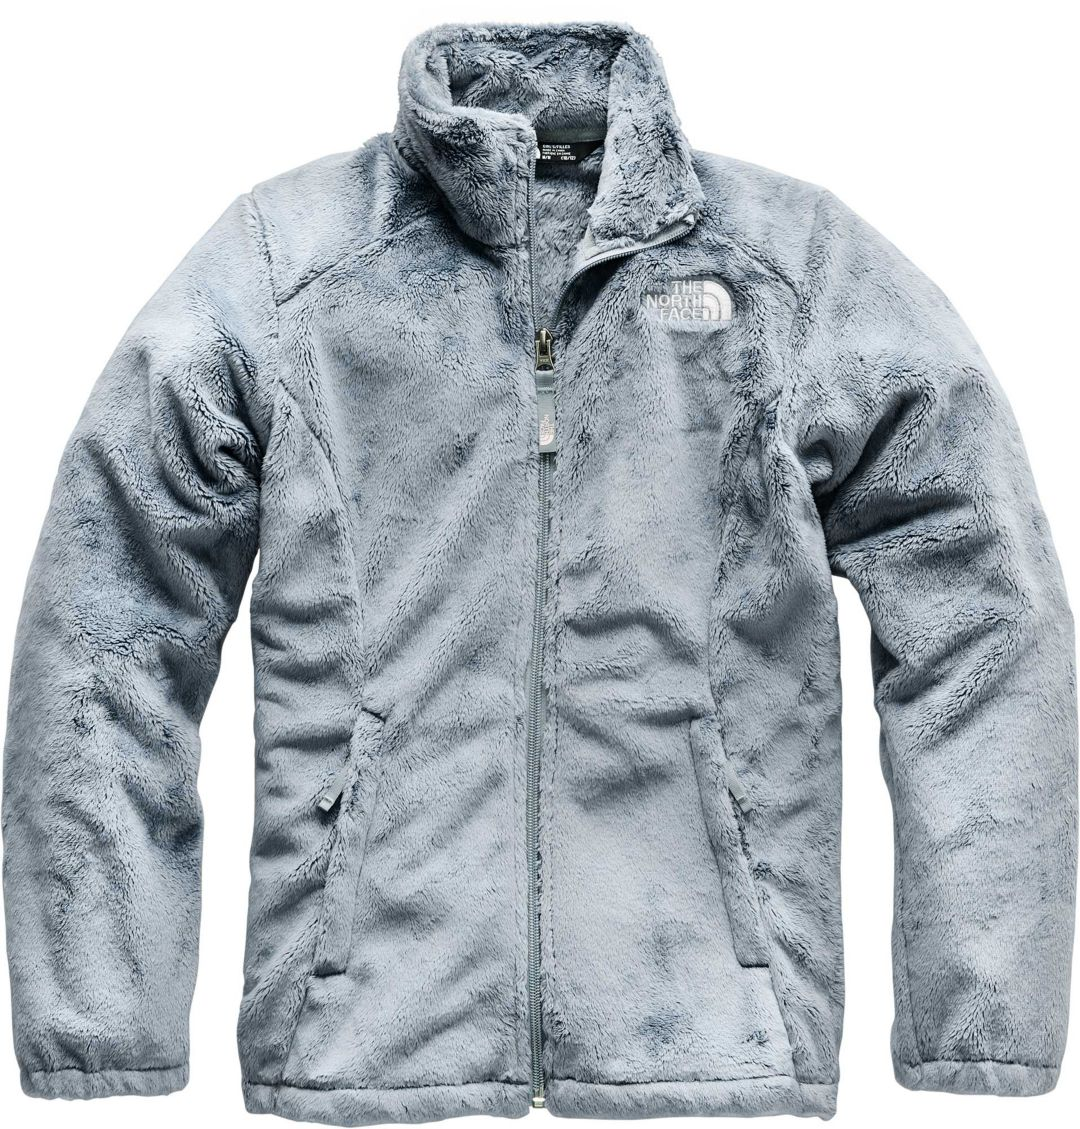 5f22596f7 The North Face Girls' Osolita Fleece Jacket | DICK'S Sporting Goods